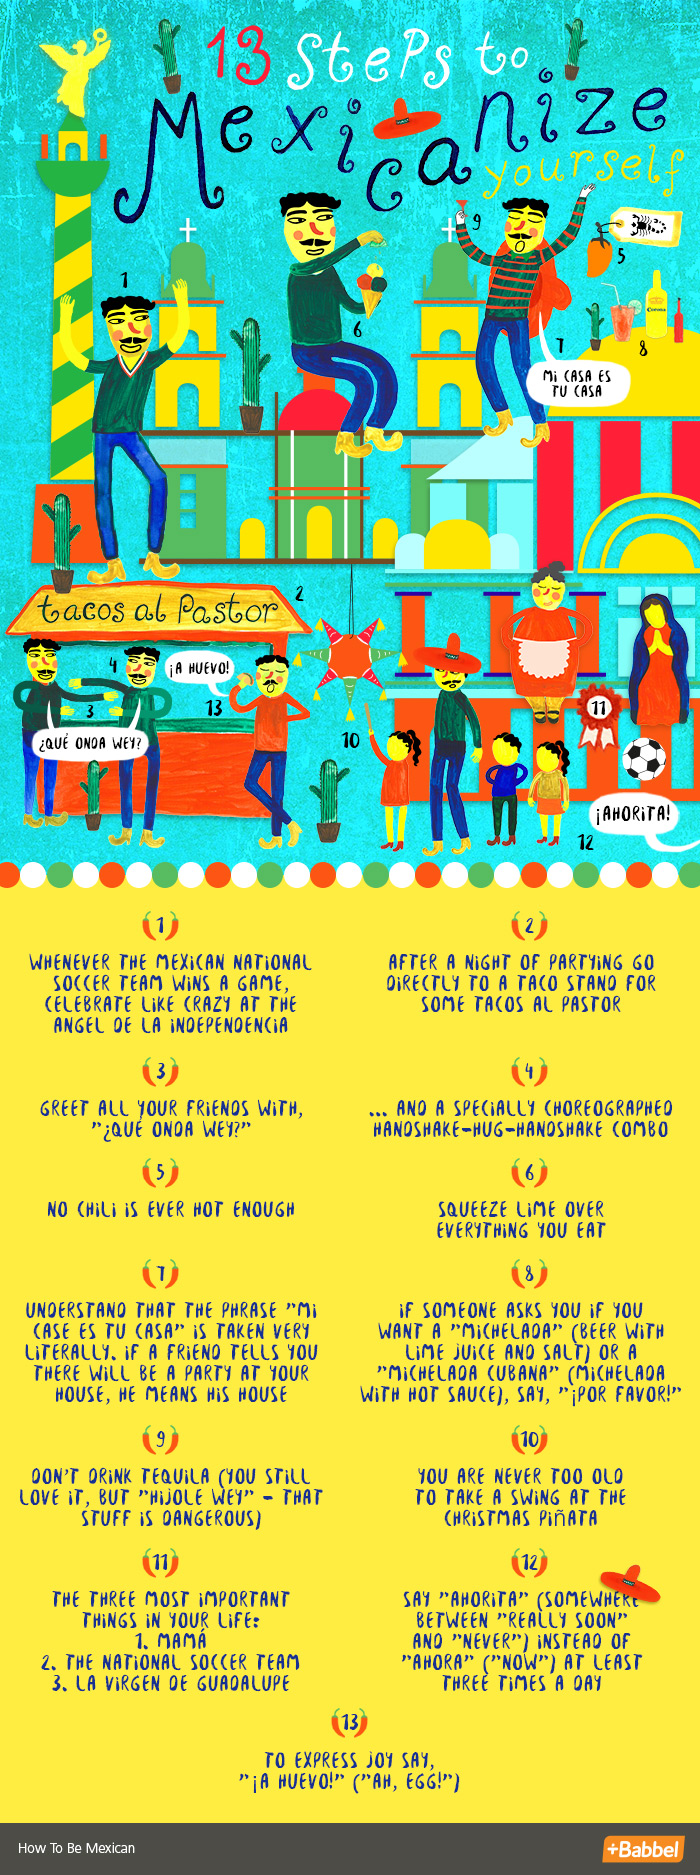 13 Steps To Mexicanize Yourself